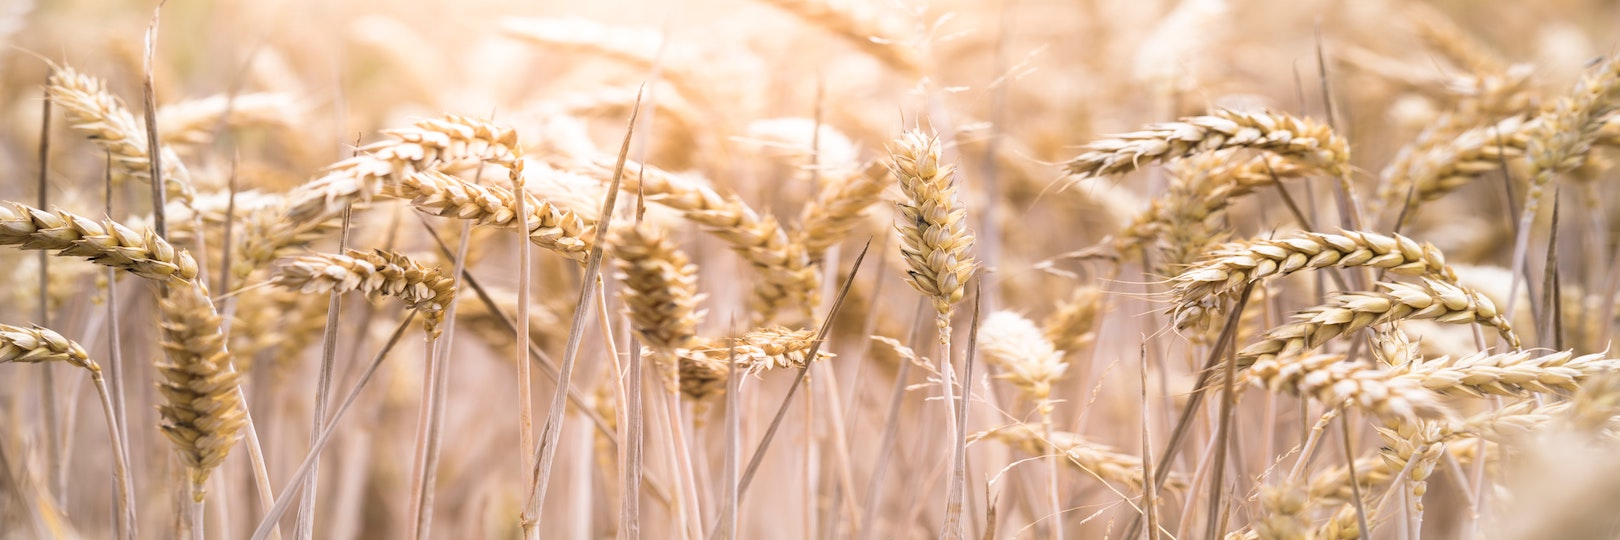 """<a href=""""https://www.bethjacobvt.org/celebrate-shavuot.html#""""                                     target="""""""">                                                                 <span class=""""slider_title"""">                                     Celebrate Shavuot!                                </span>                                                                 </a>                                                                                                                                                                                       <span class=""""slider_description"""">There are many ways to celebrate Shavuot with Beth Jacob Synagogue this year including both in person and zoom options– join us!</span>                                                                                     <a href=""""https://www.bethjacobvt.org/celebrate-shavuot.html#"""" class=""""slider_link""""                             target="""""""">                             Learn more                            </a>"""